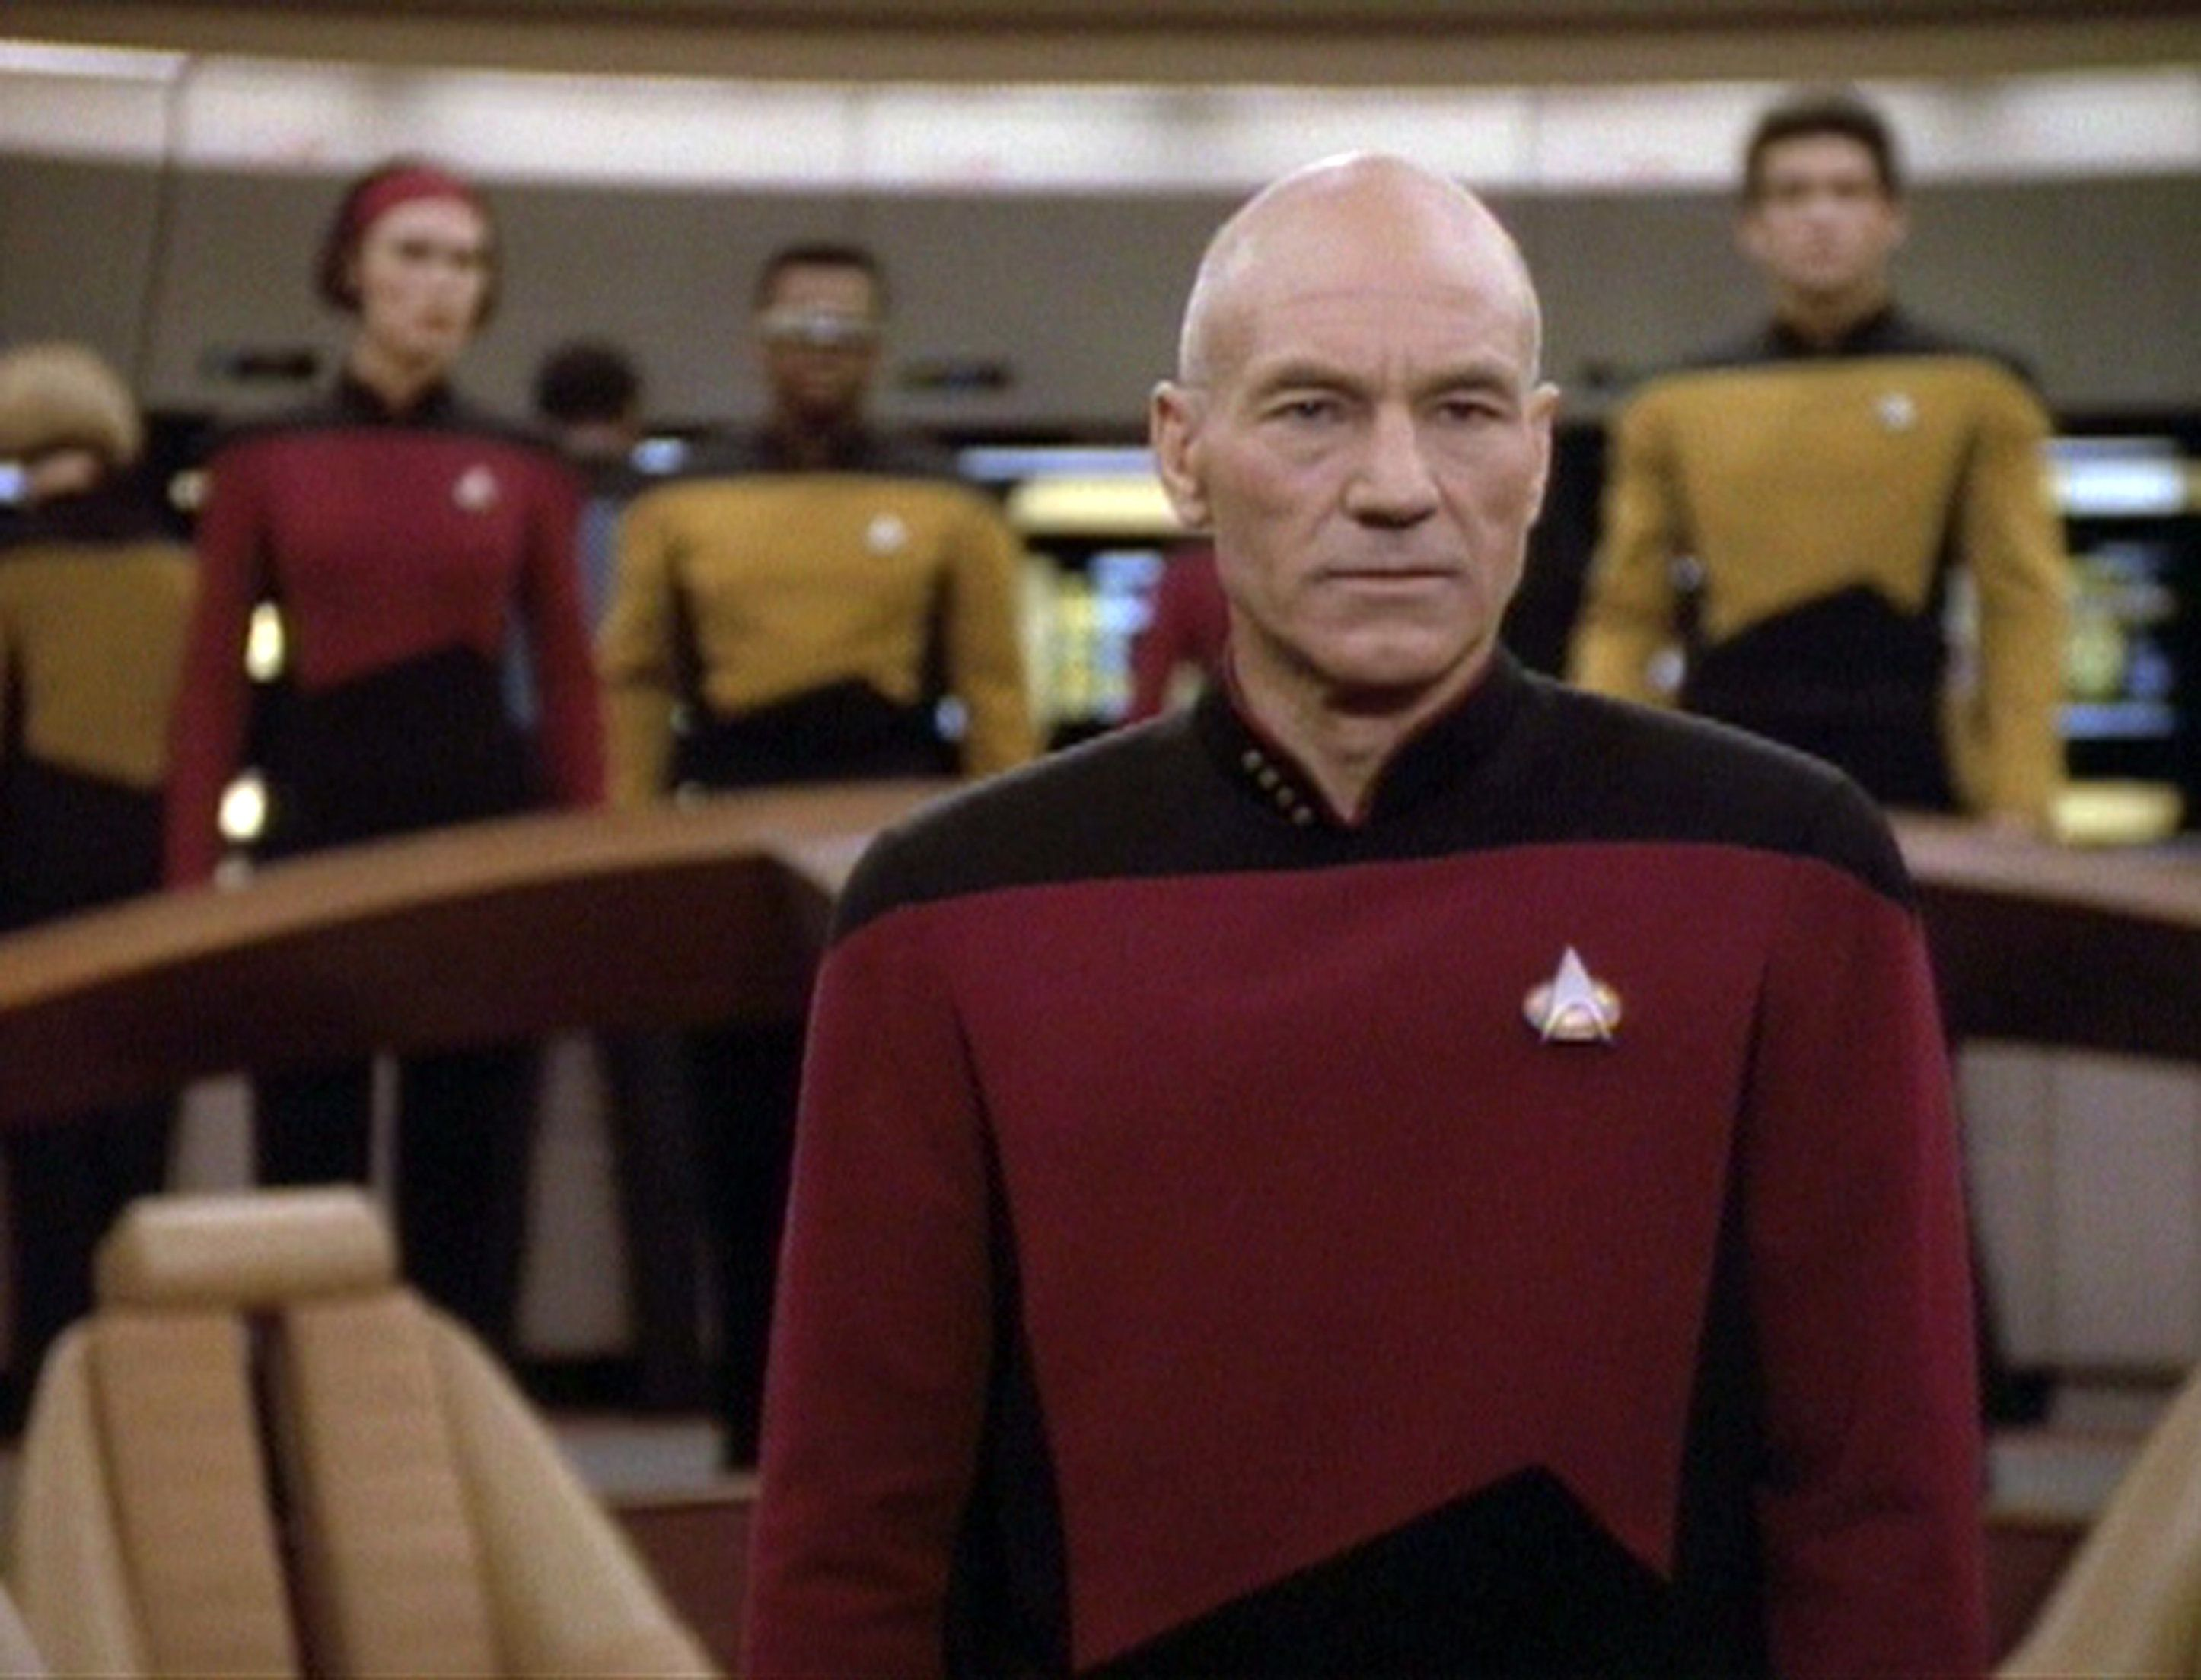 British actor Patrick Stewart (as Captain Jean-Luc Picard) in a scene from an episode of the television series 'Star Trek: The Next Generation' entitled 'The Next Phase,' California, May 16, 1992. (Photo by CBS Photo Archive/Getty Images)